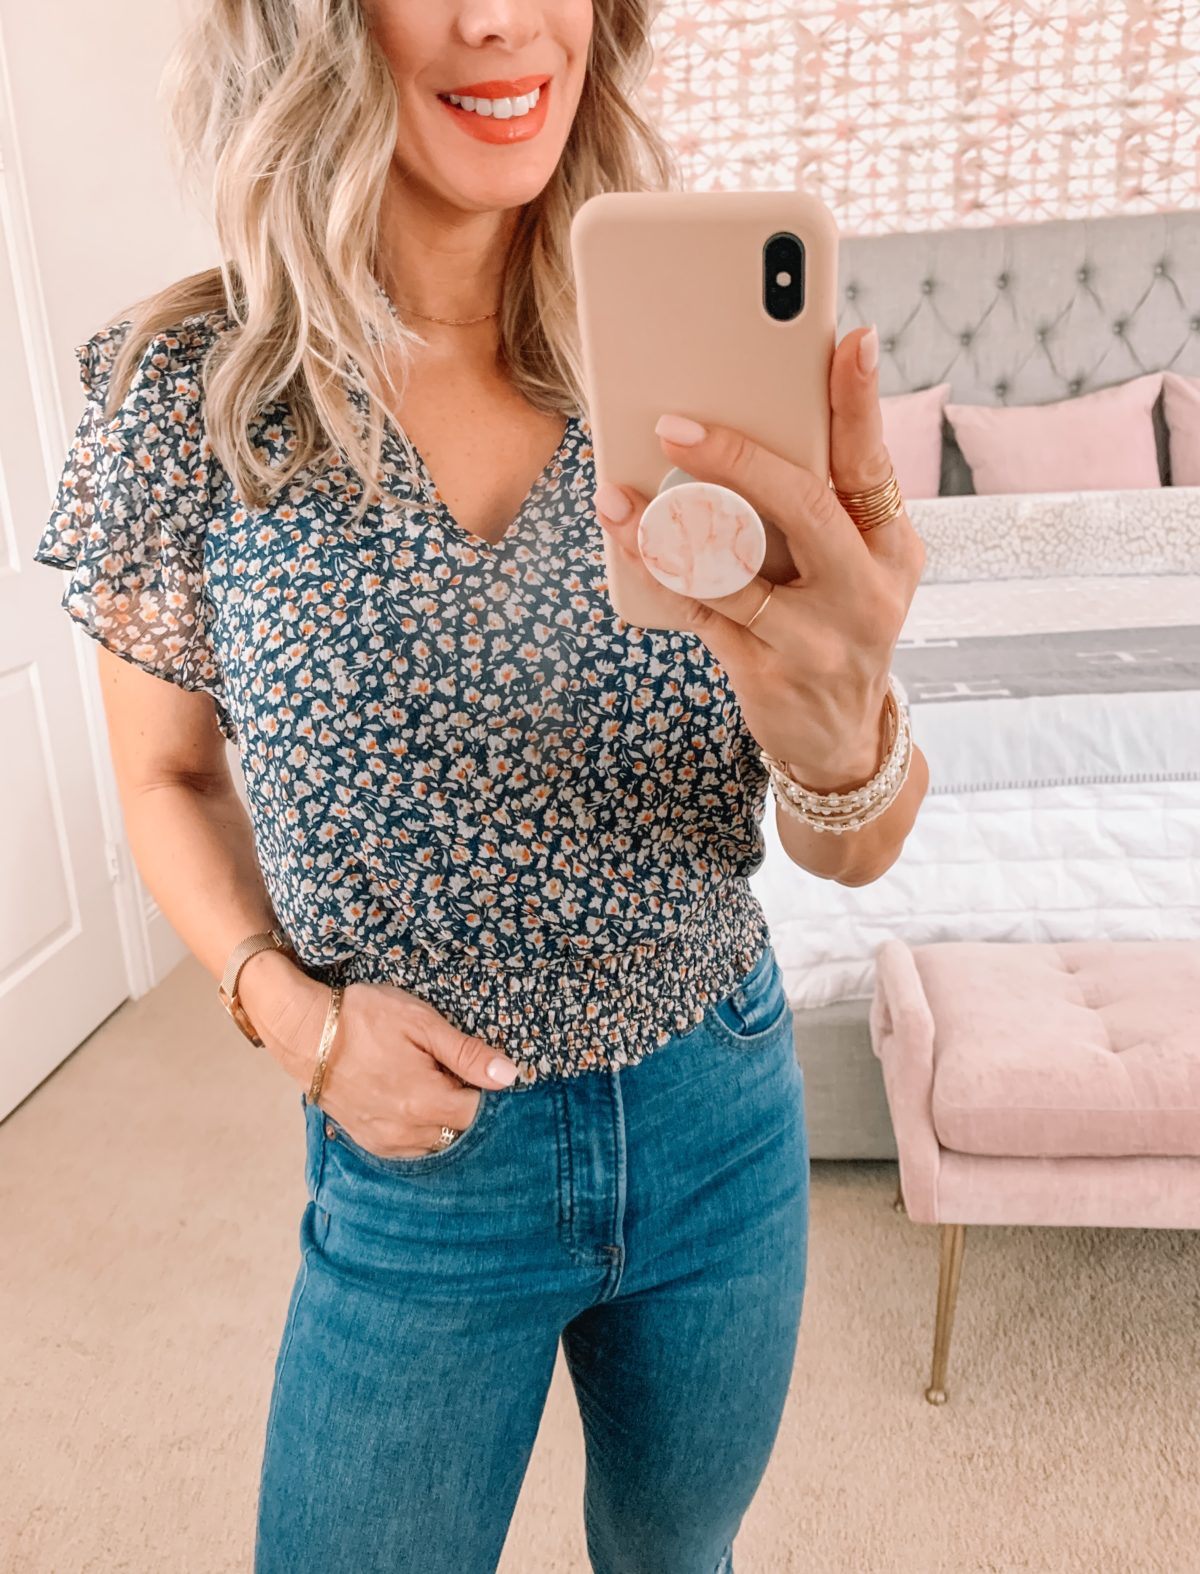 Dressing Room Finds, LOFT, Revolve, Floral Top, Jeans